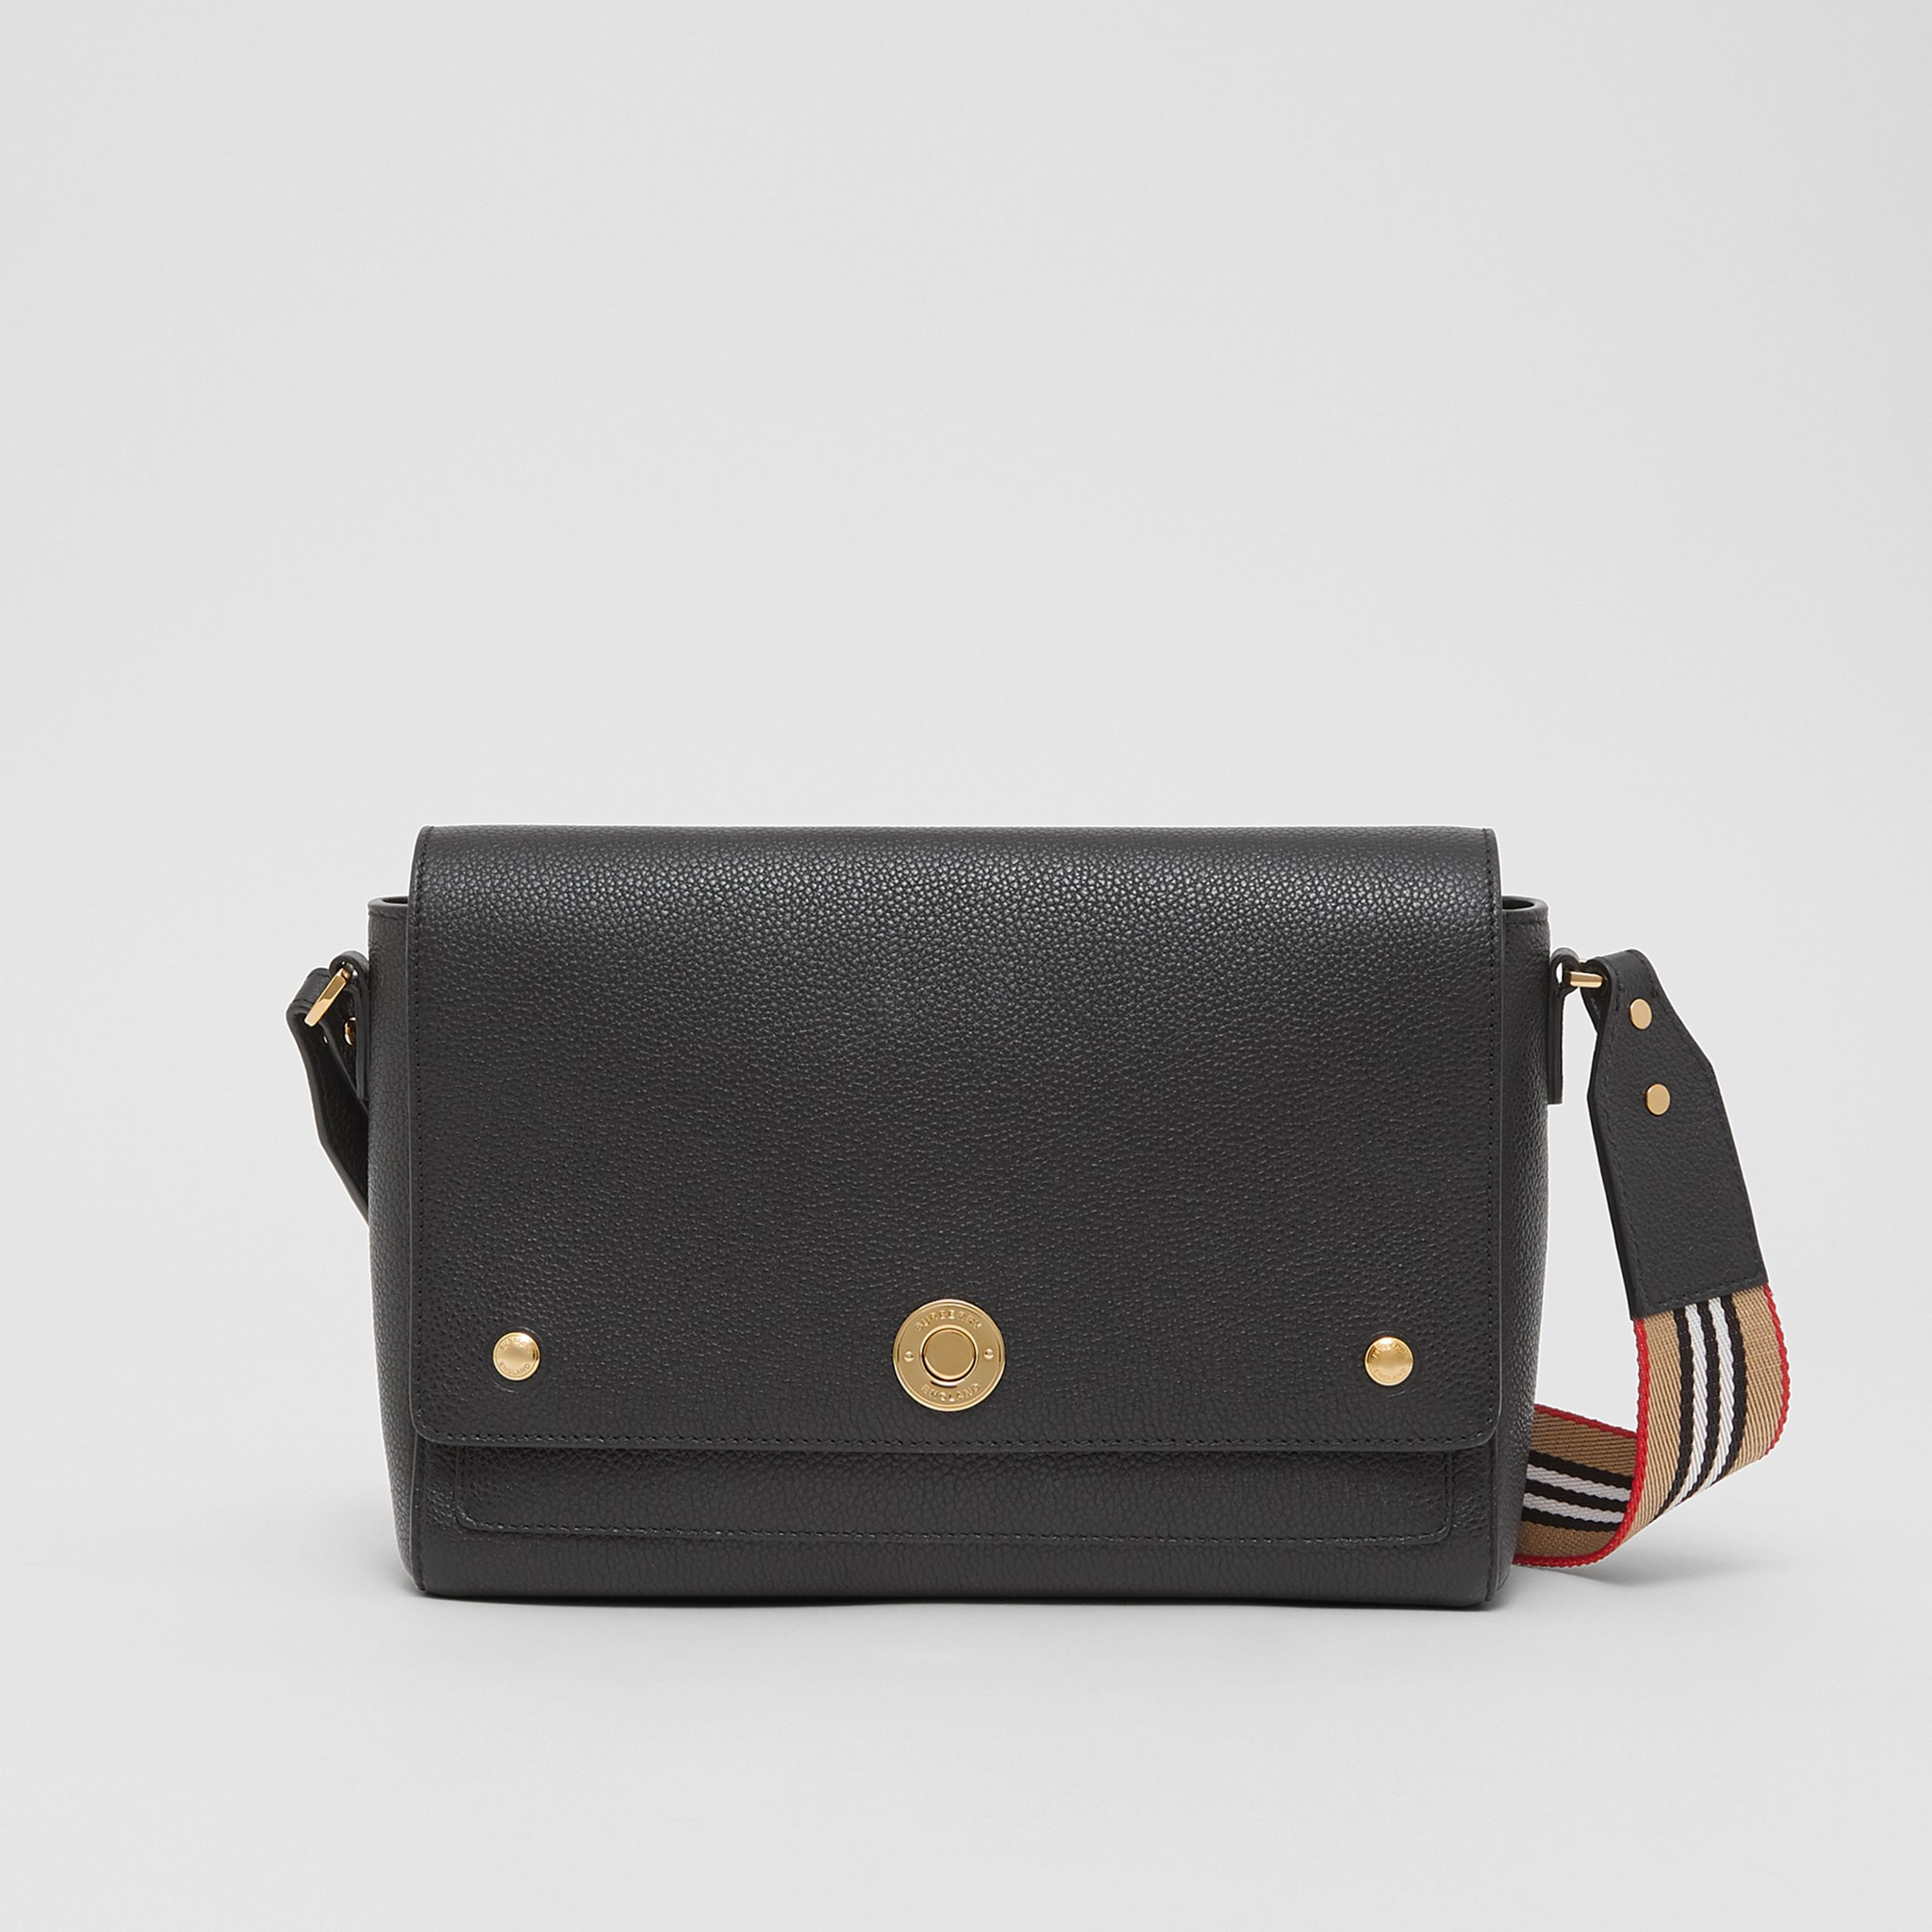 Grainy Leather Note Crossbody Bag in Black - Women | Burberry - 1